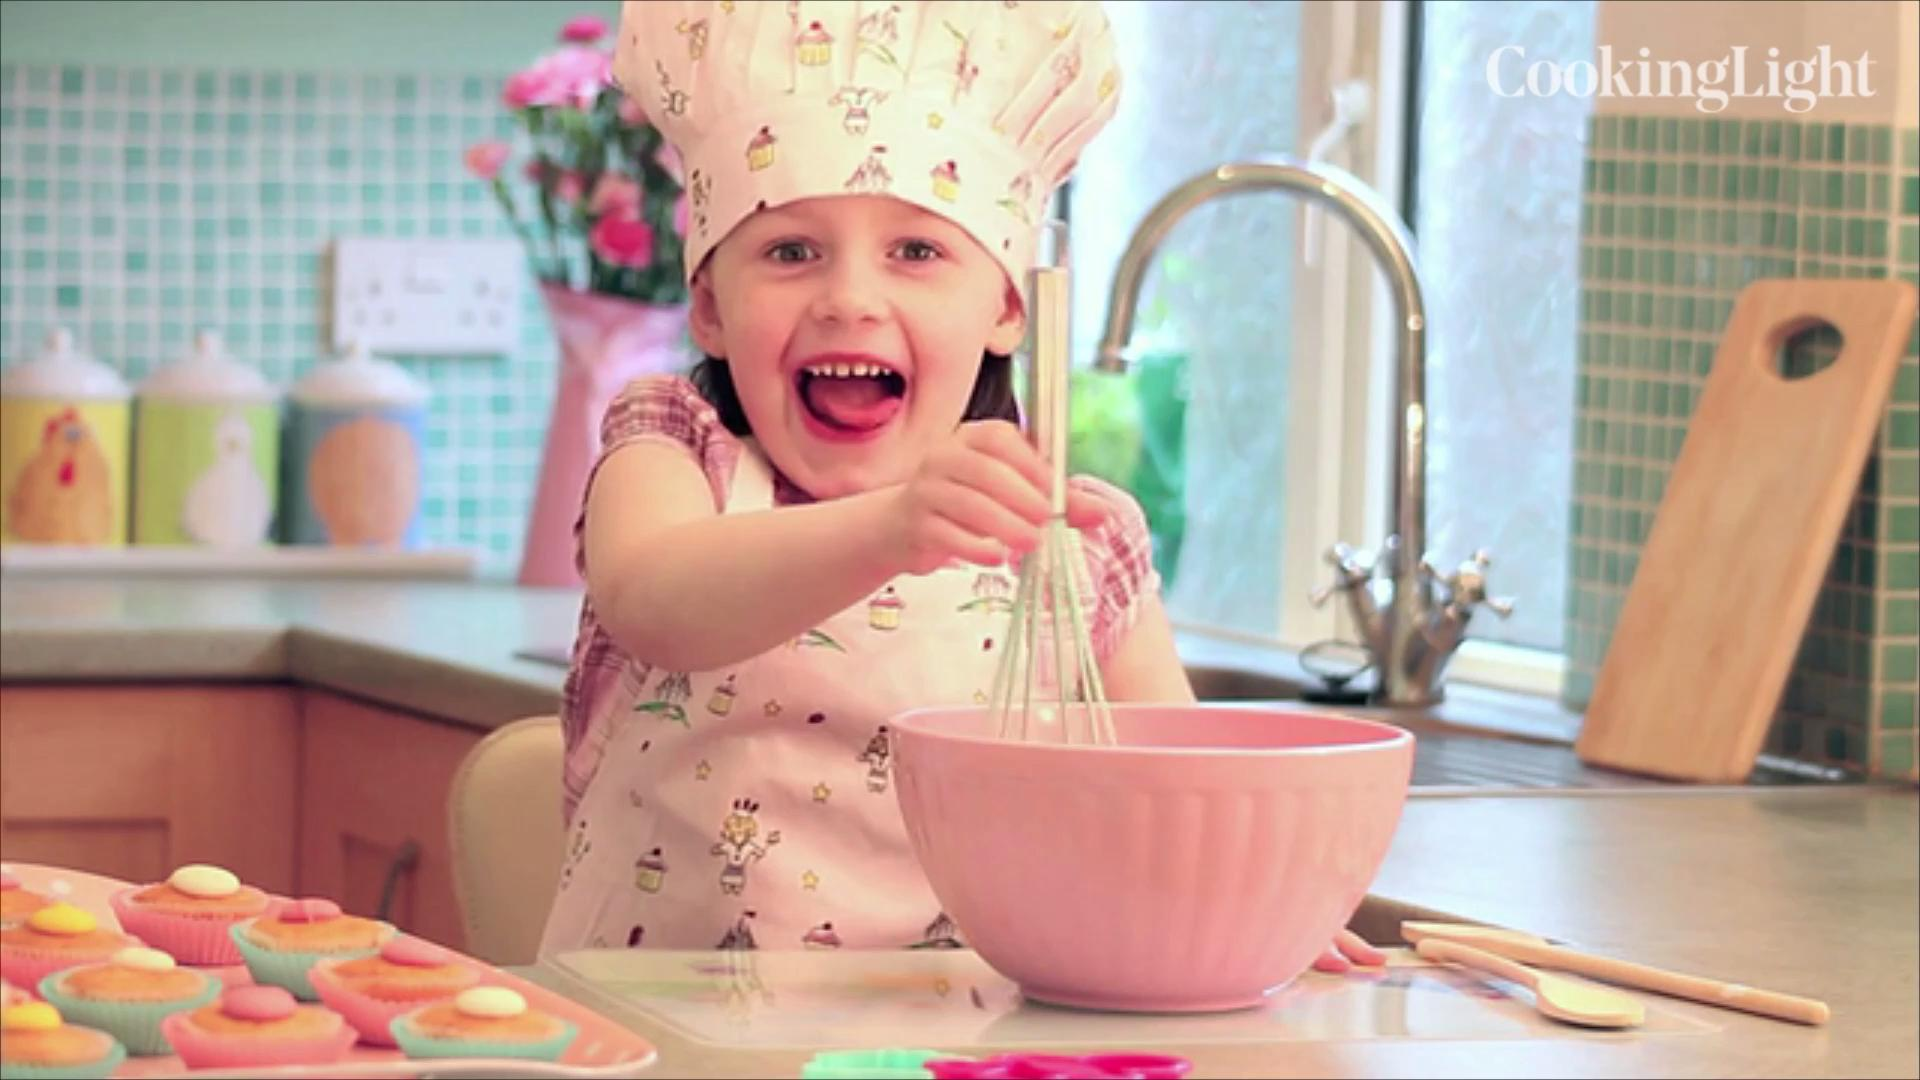 New We Can Cook Childrens Girls 14 Piece Baking Pink Kit Kids Cooking Gift Set